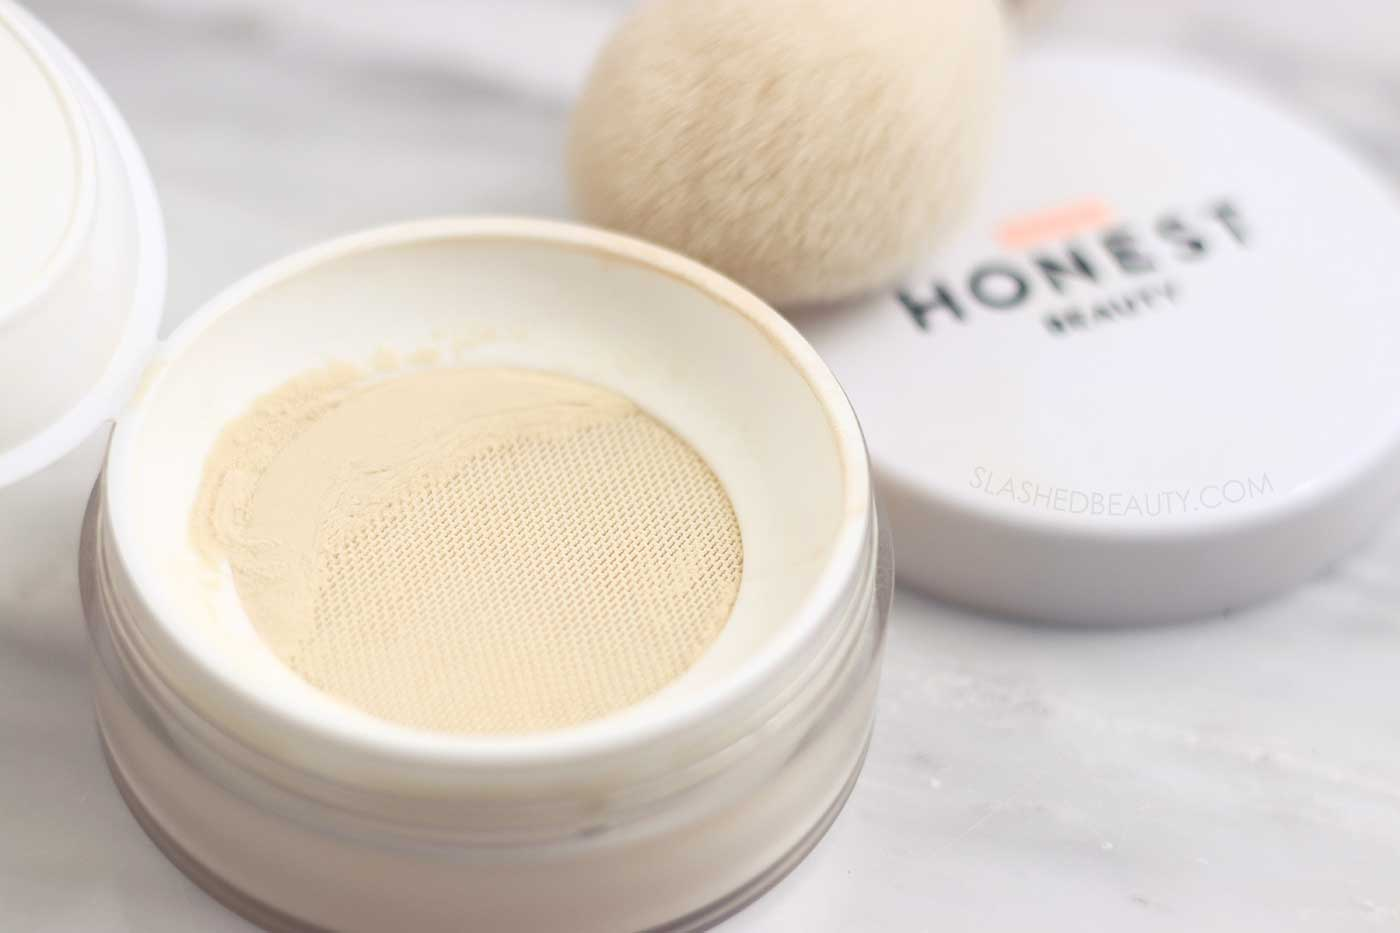 Honest Beauty Invisible Loose Blurring Powder | 5 Best Honest Beauty Products | Slashed Beauty